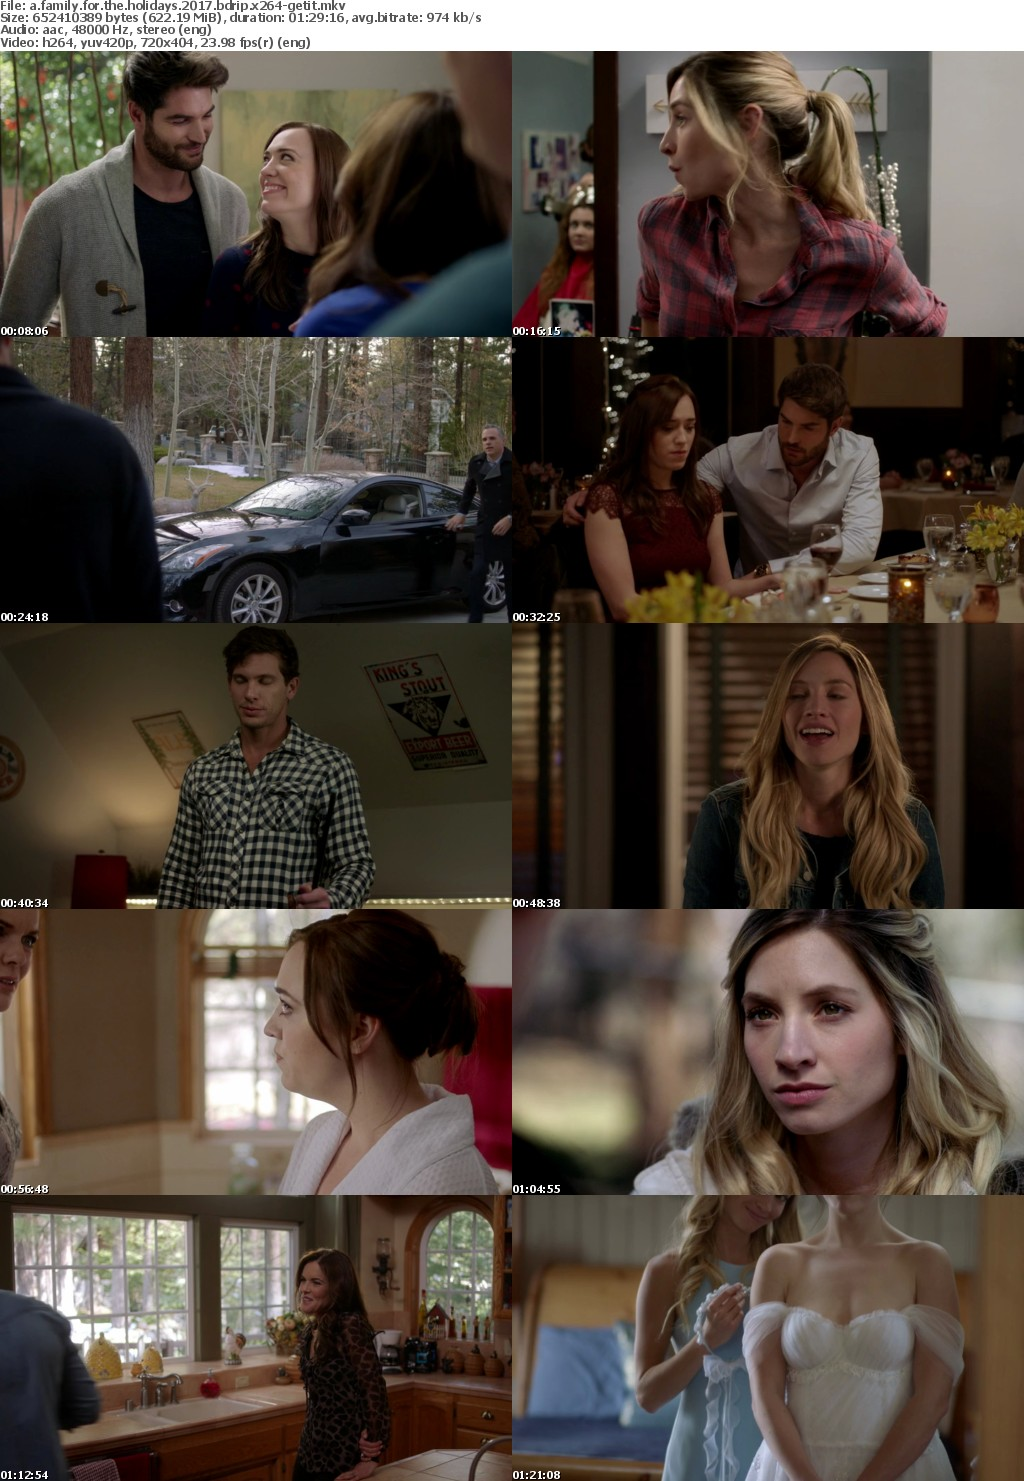 A Family for the Holidays (2017) BDRip x264-GETiT